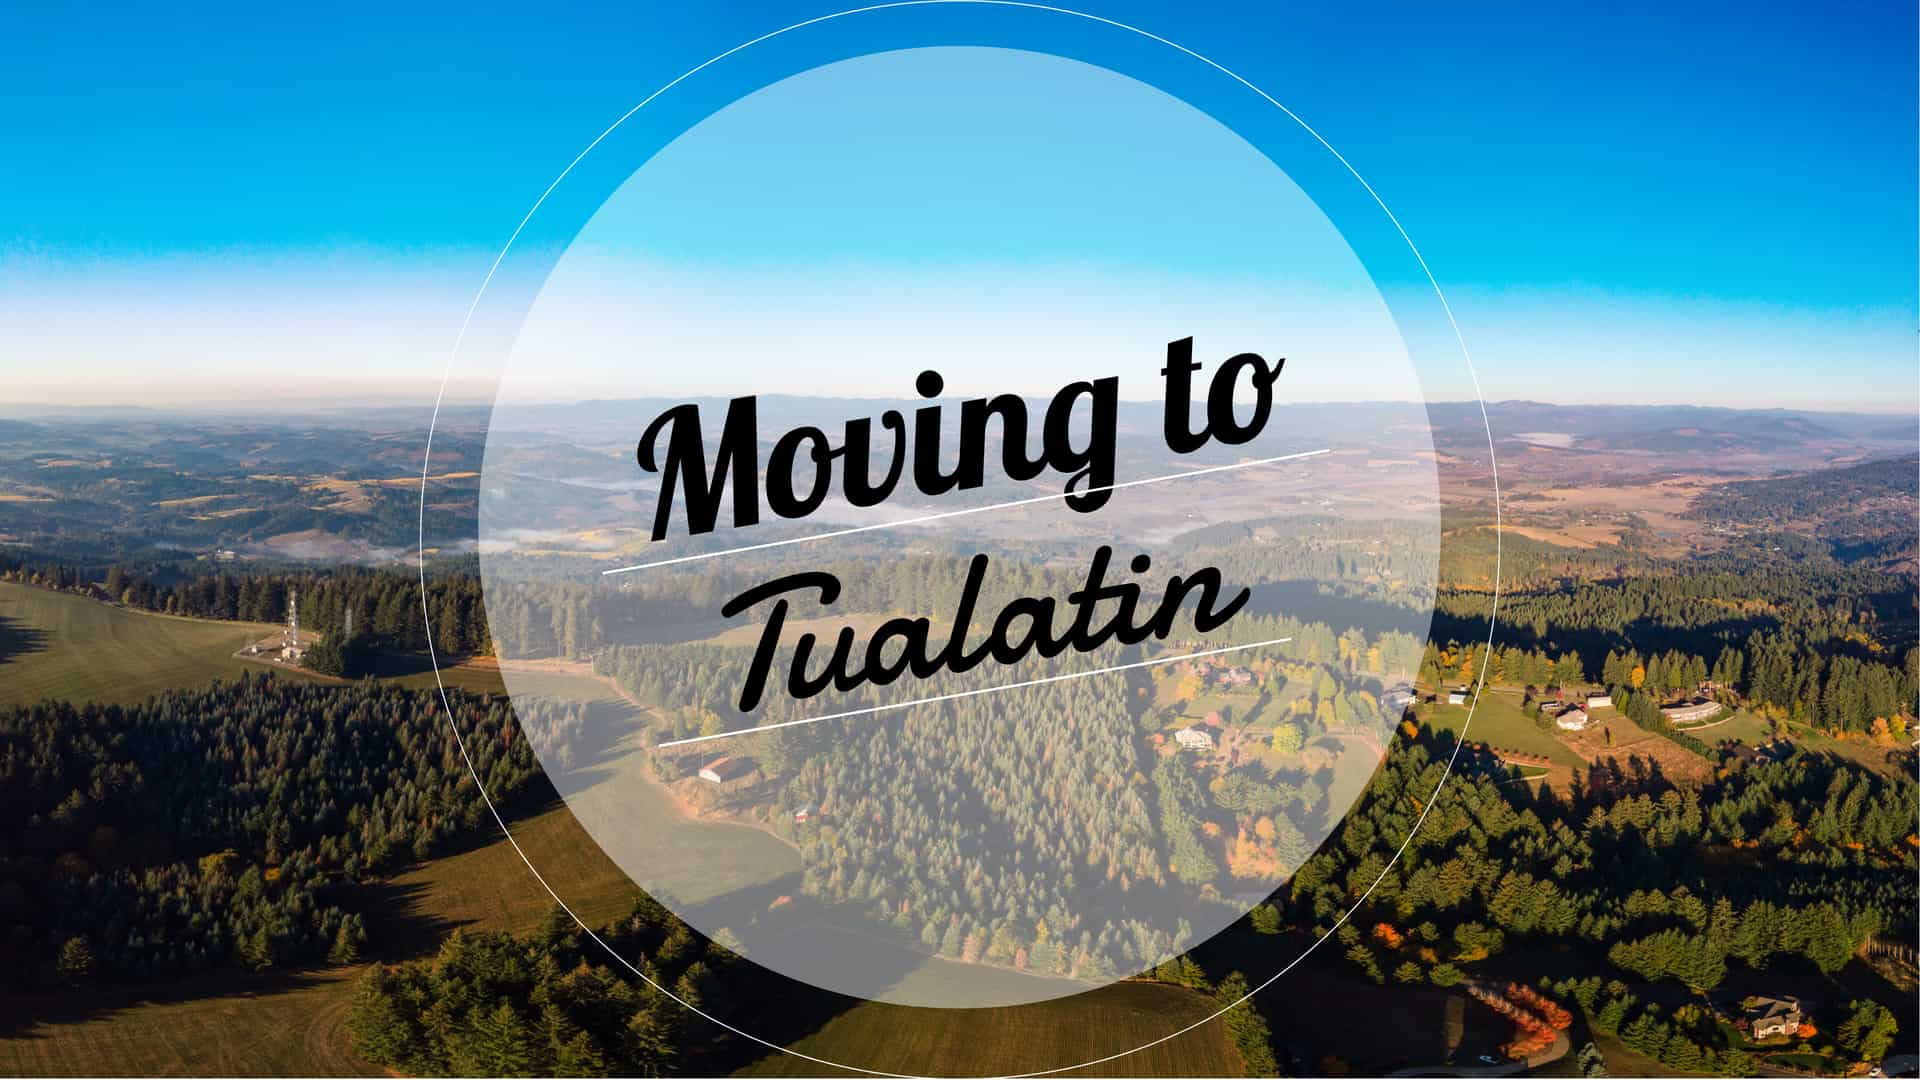 Aerial view of the Tualatin Valley in Oregon.